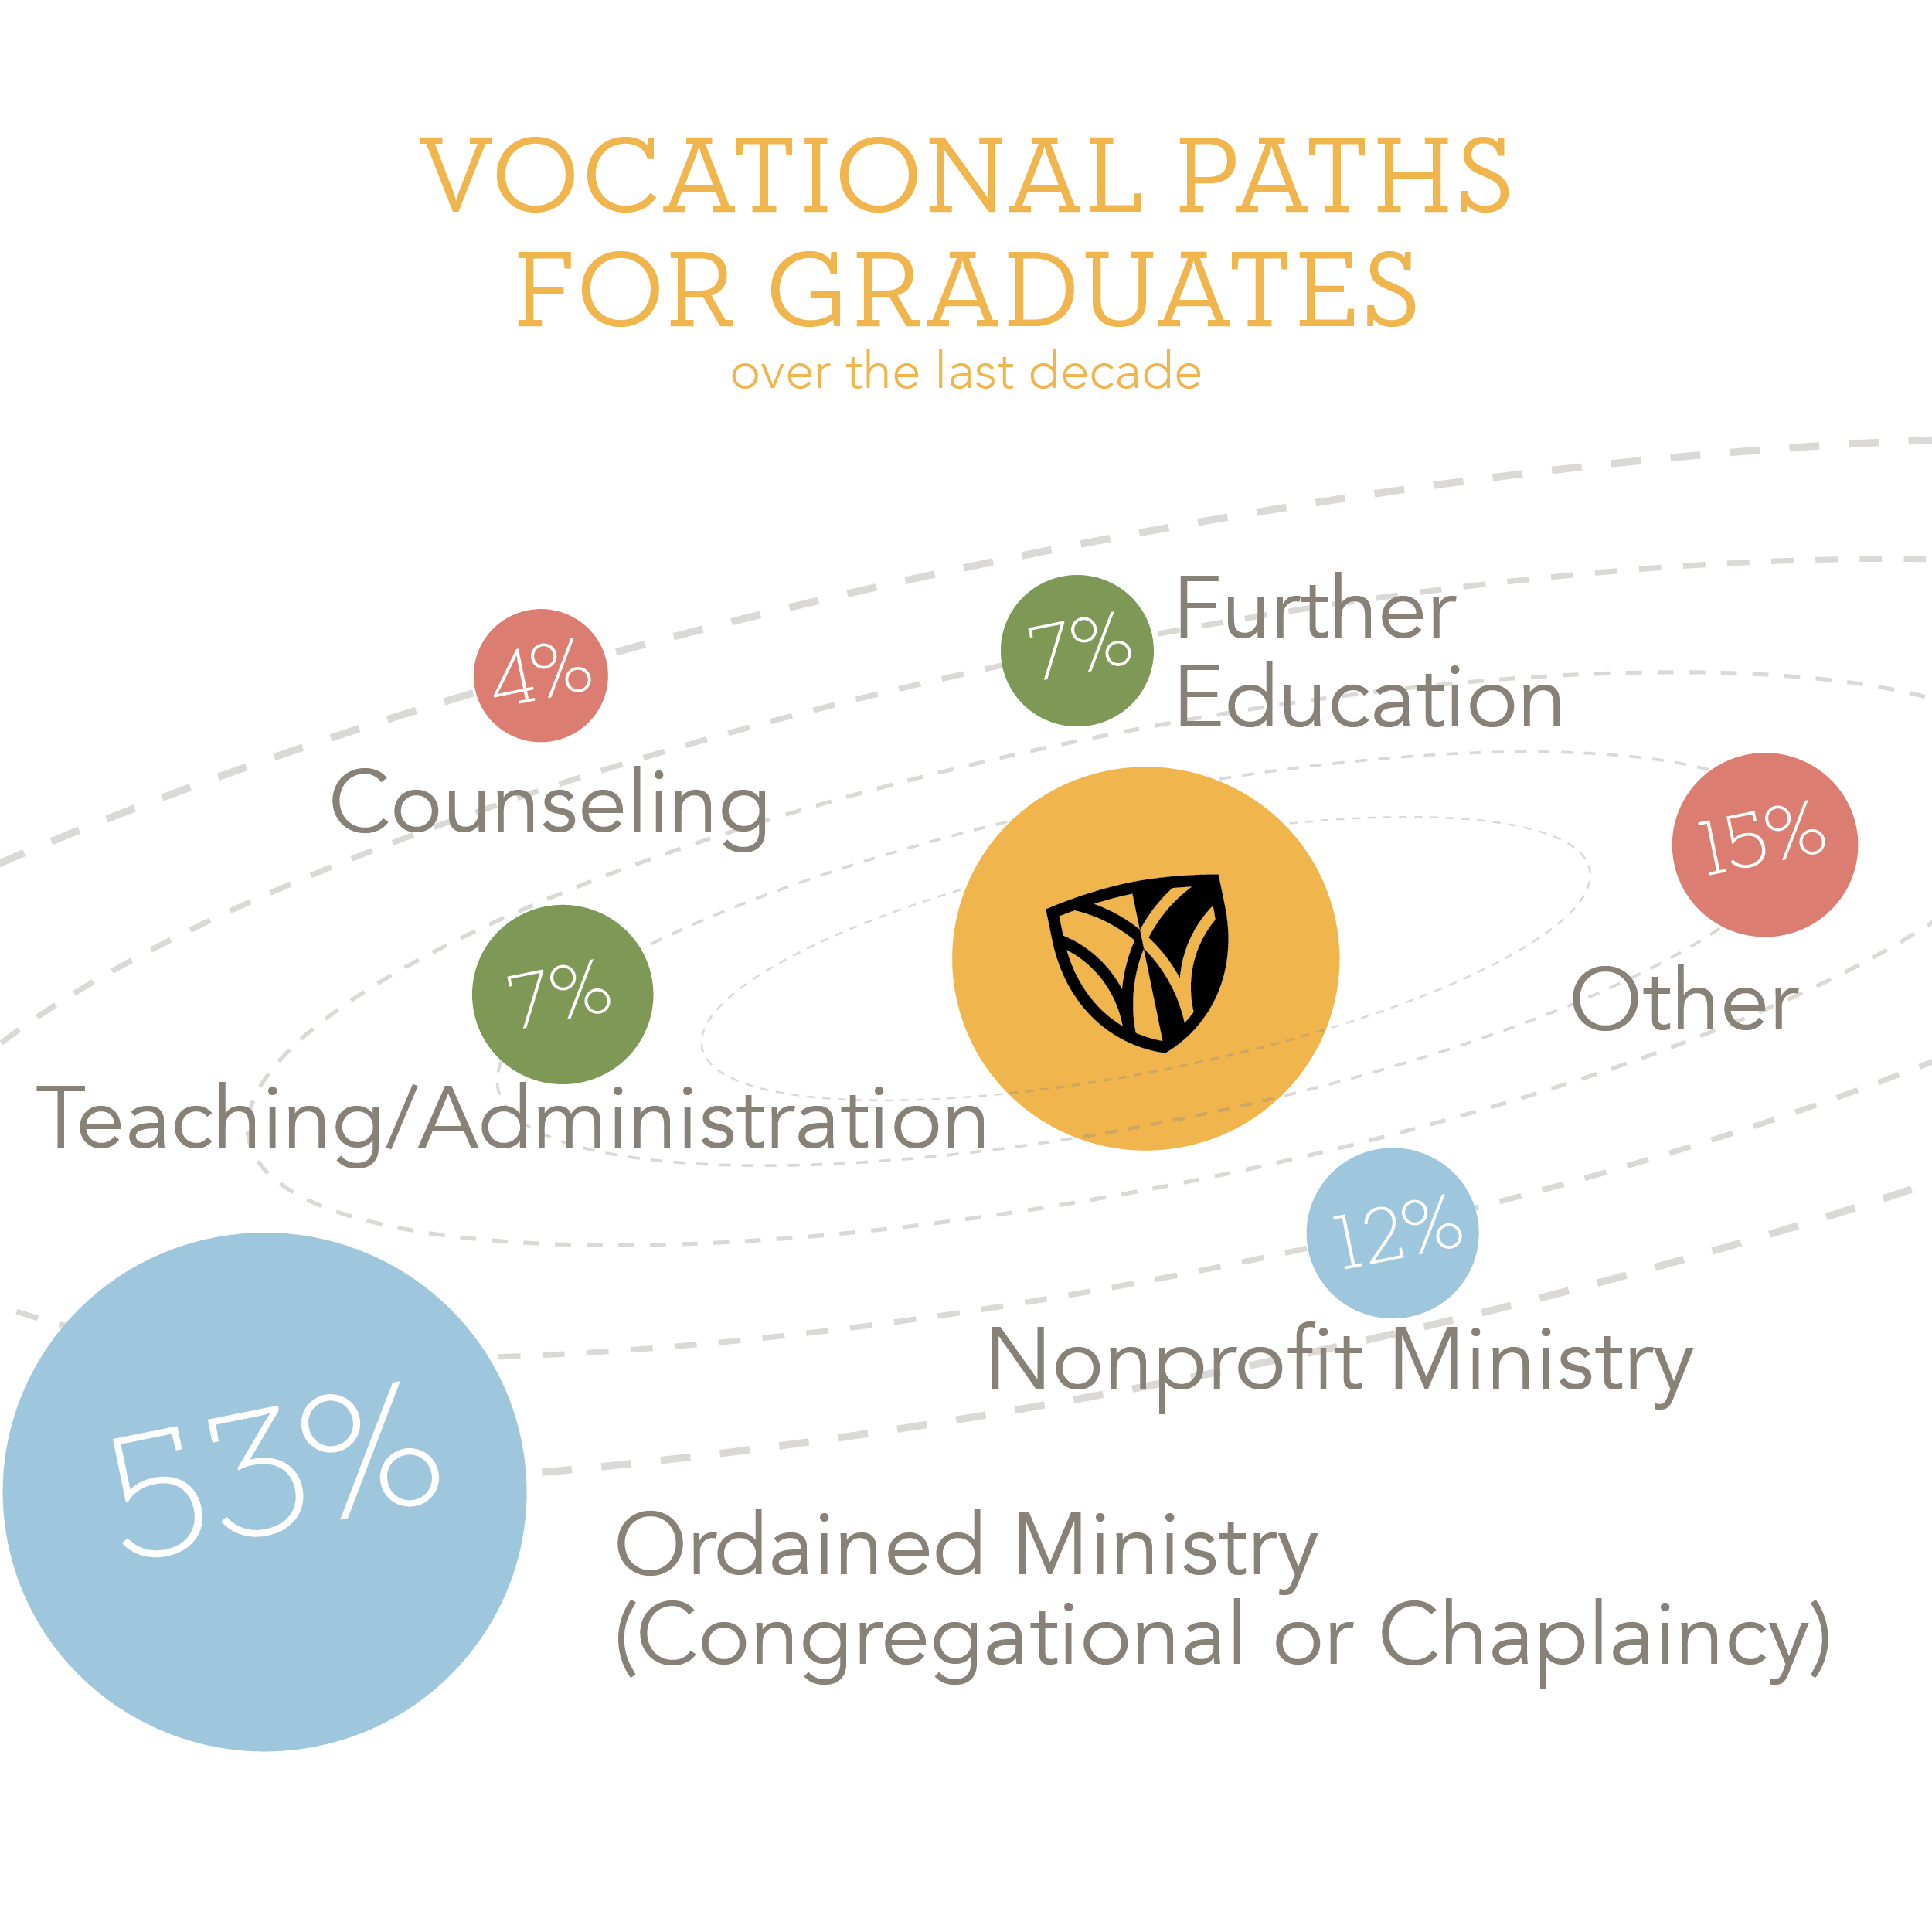 Info graphic for the vocational paths for graduates of the School of Divinity over the last decade